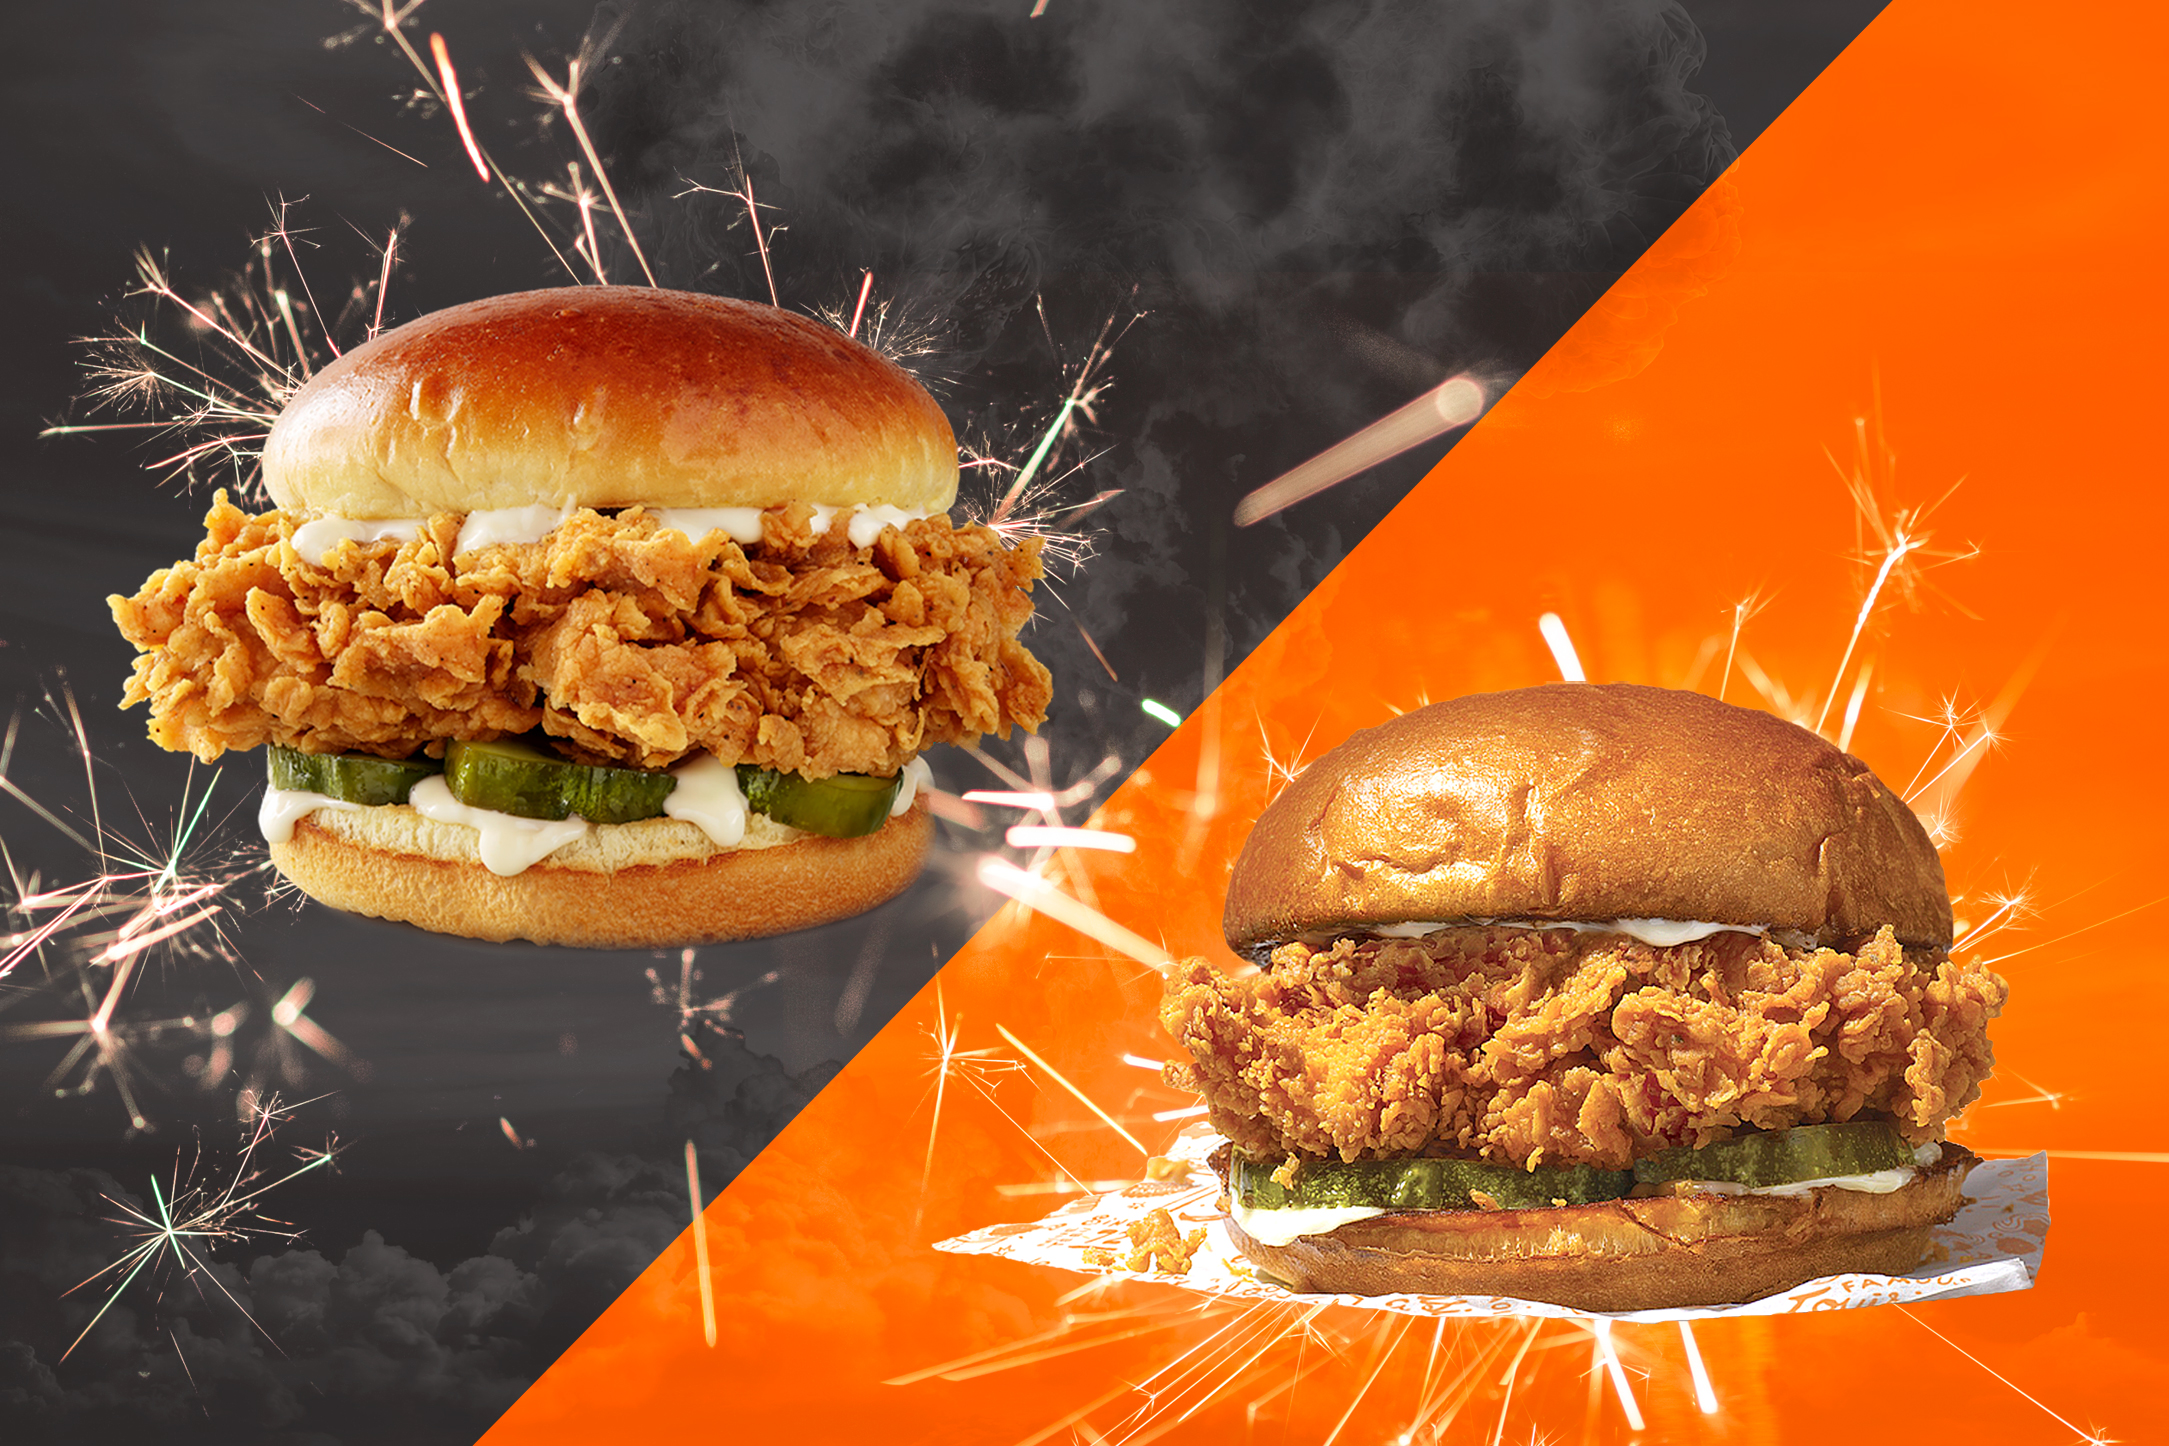 5 lessons marketers can learn from the chicken sandwich wars